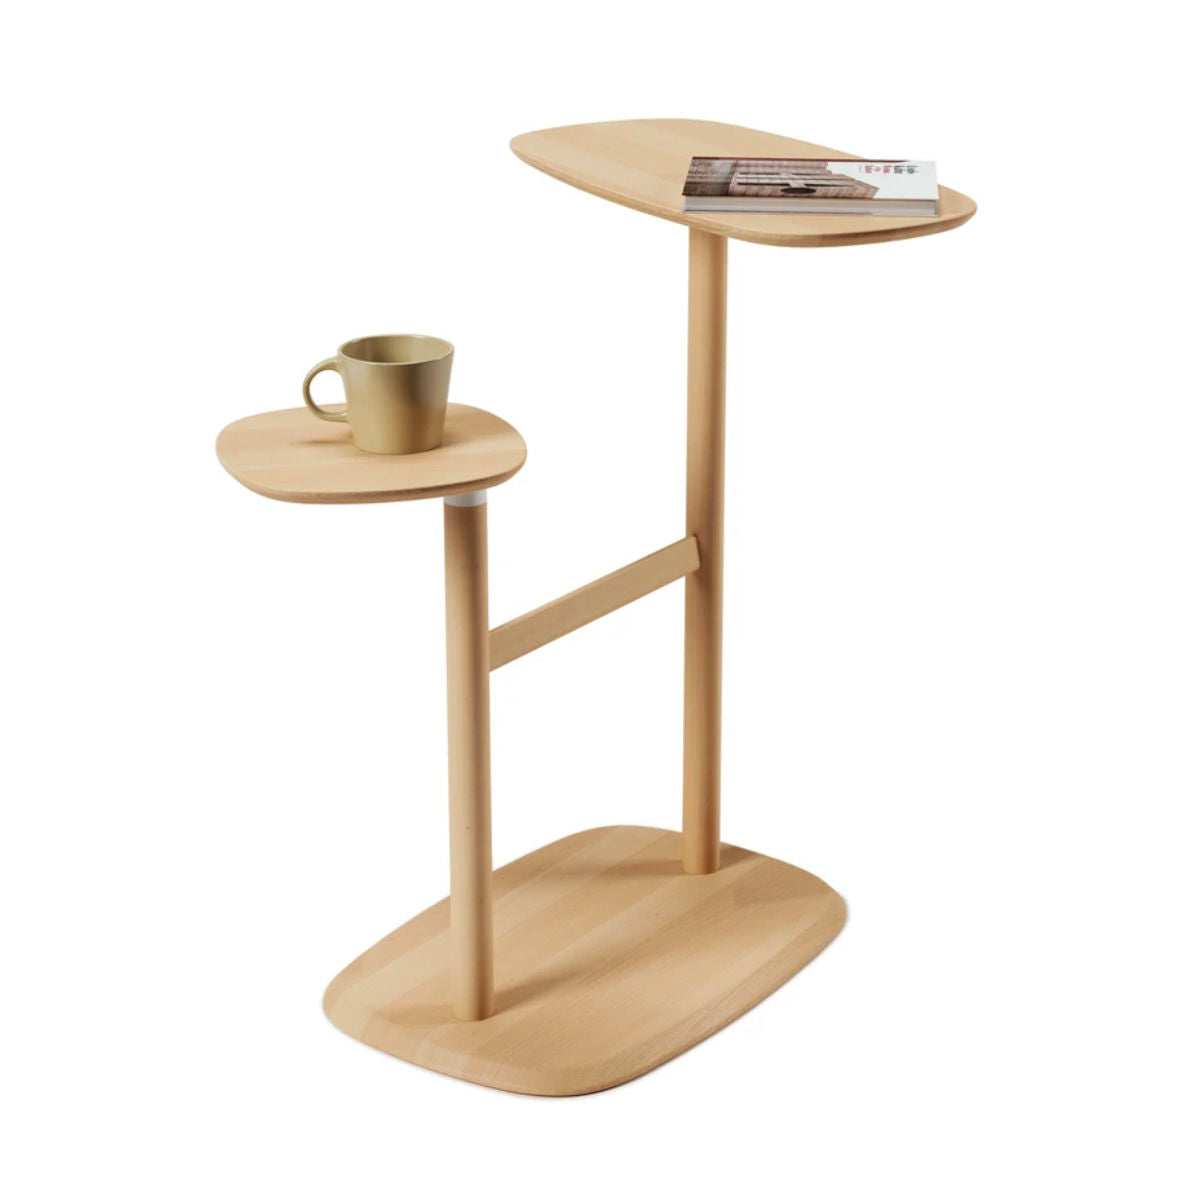 Umbra Swivo side table, beech